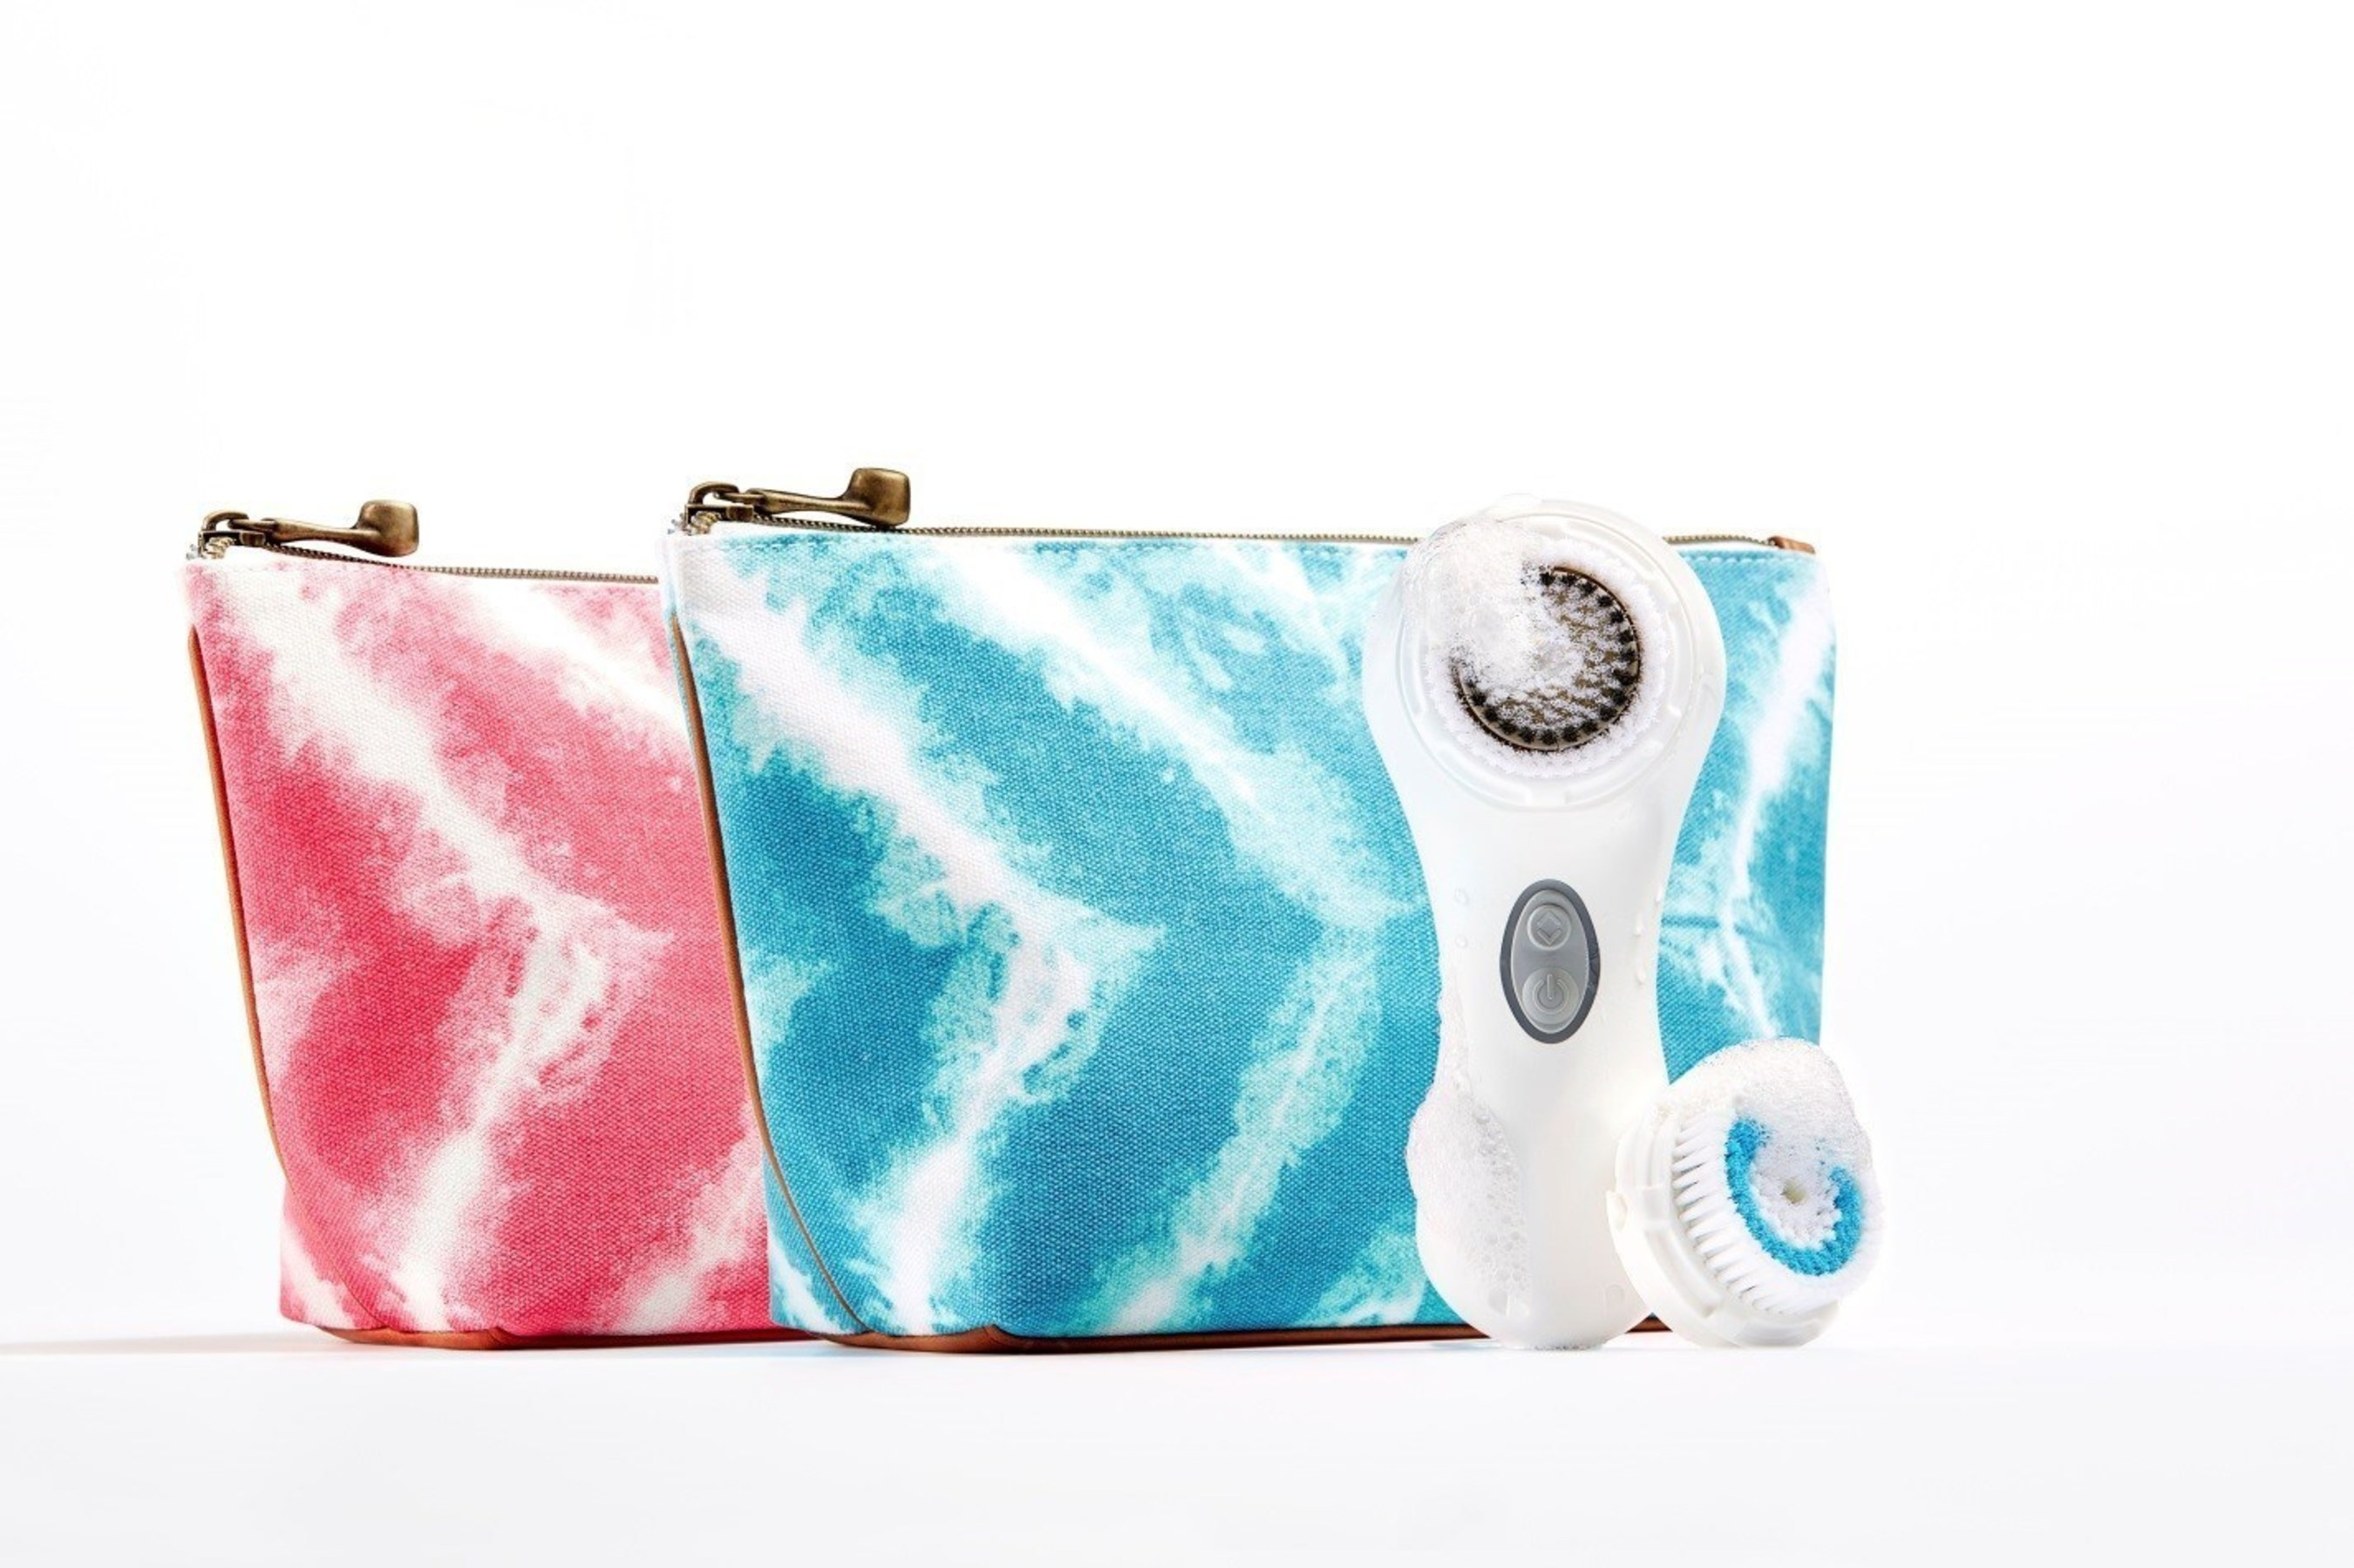 Just in time for the summer, Clarisonic is launching its Mia 2 Summer Batik Beauty Bag Collection in turquoise or pink, great for any beach bag or carry on.